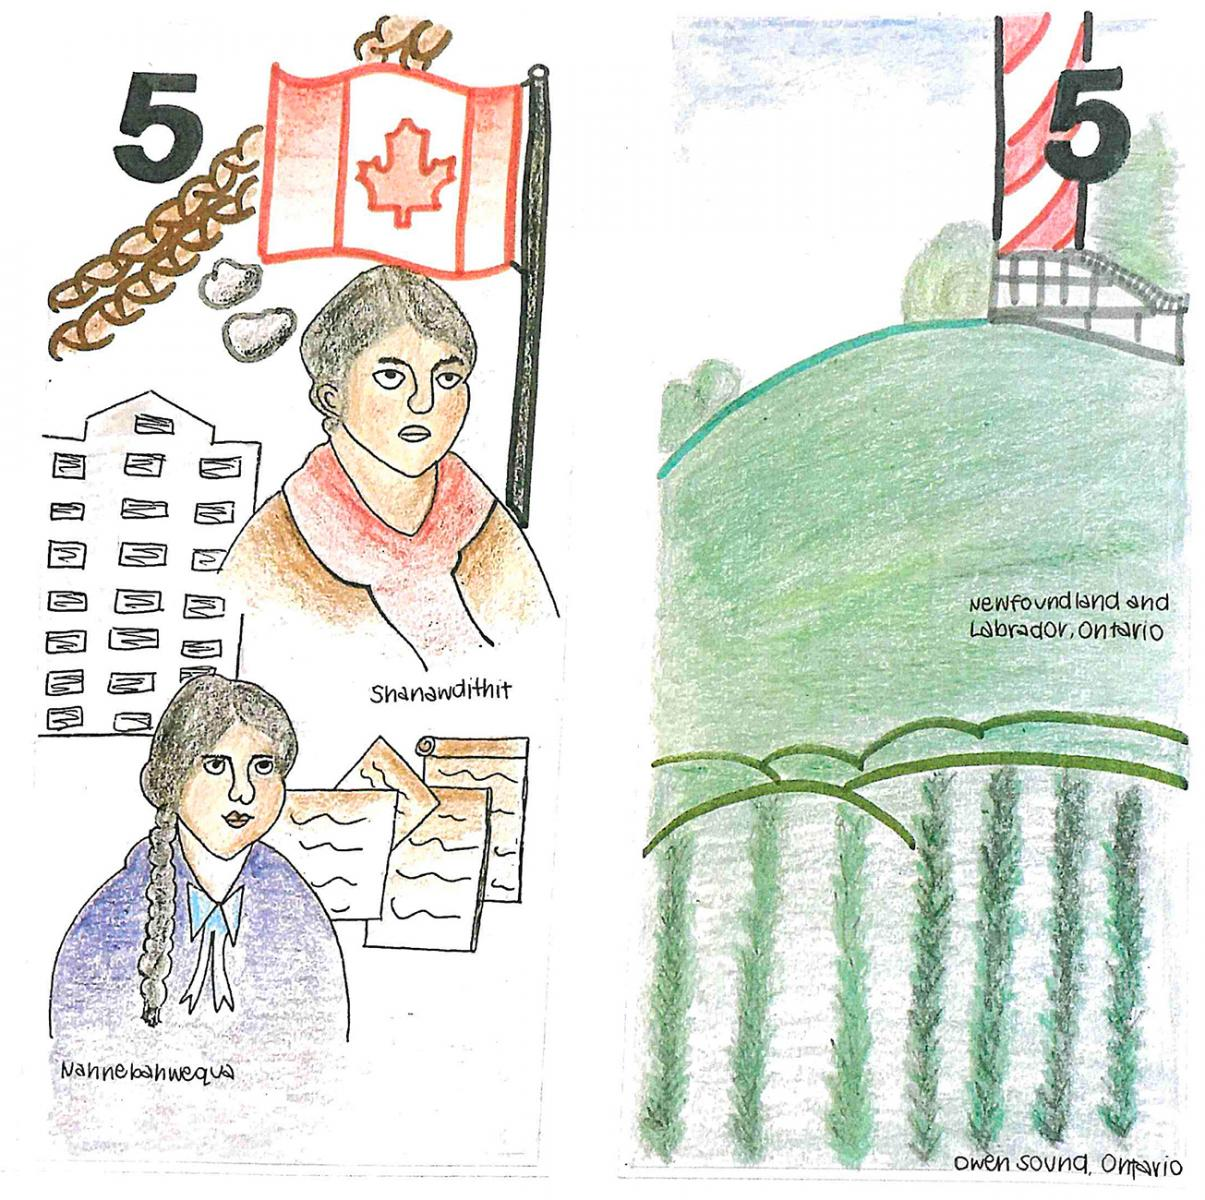 illustration, 5  dollar bill model with coloured pencil sketches of two women and landscapes